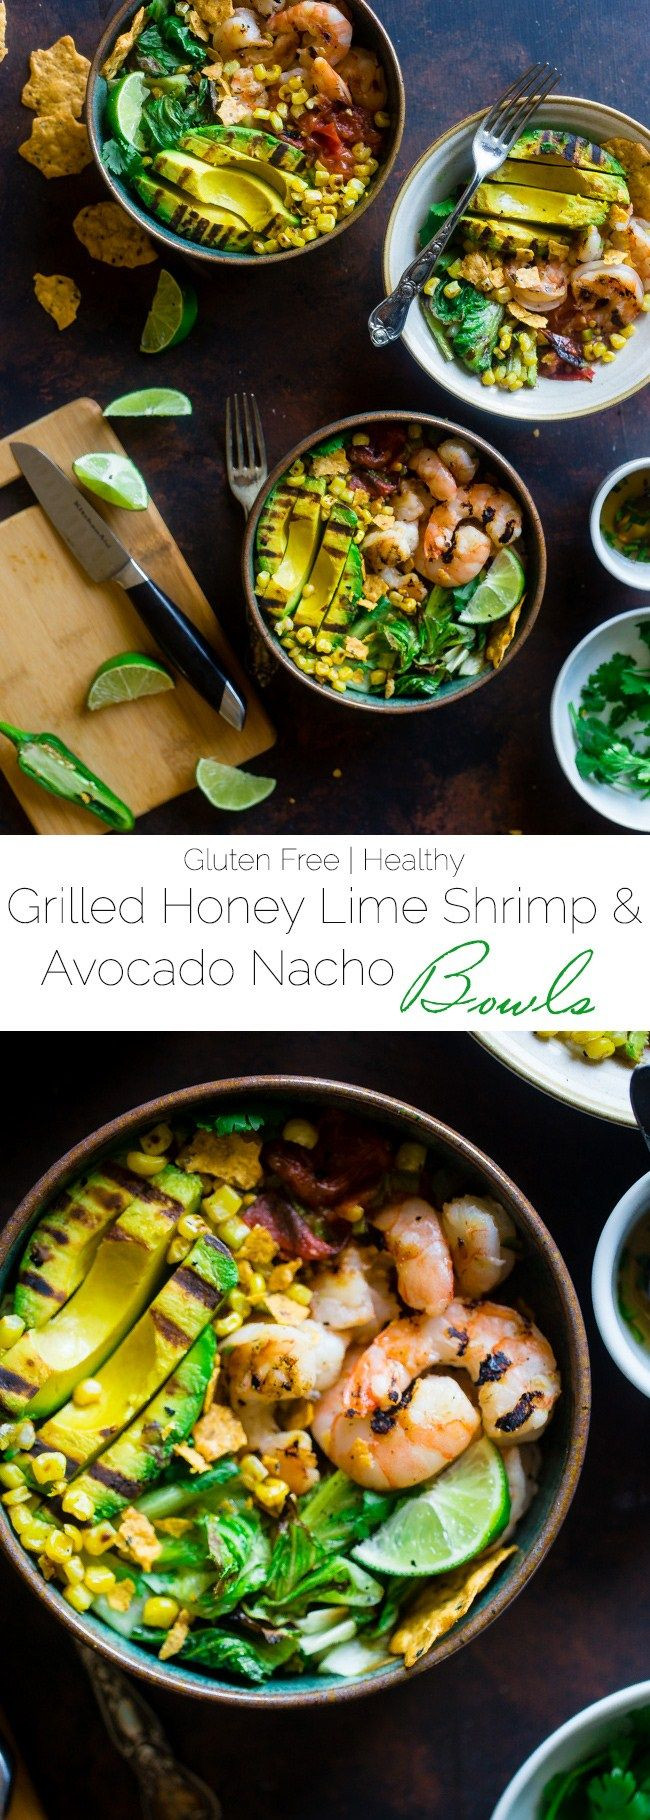 Honey Lime Grilled Avocado Shrimp Nacho Bowls - These smoky-sweet bowls have glazed honey lime grilled avocado, spicy shrimp. tomato and corn! Top them with gluten free nacho chips for a healthy, summer meal that's packed with flavor! | Foodfaithfitness.com | Taylor | Food Faith Fitness - Healthy Gluten Free Recipes & Fitness Tips